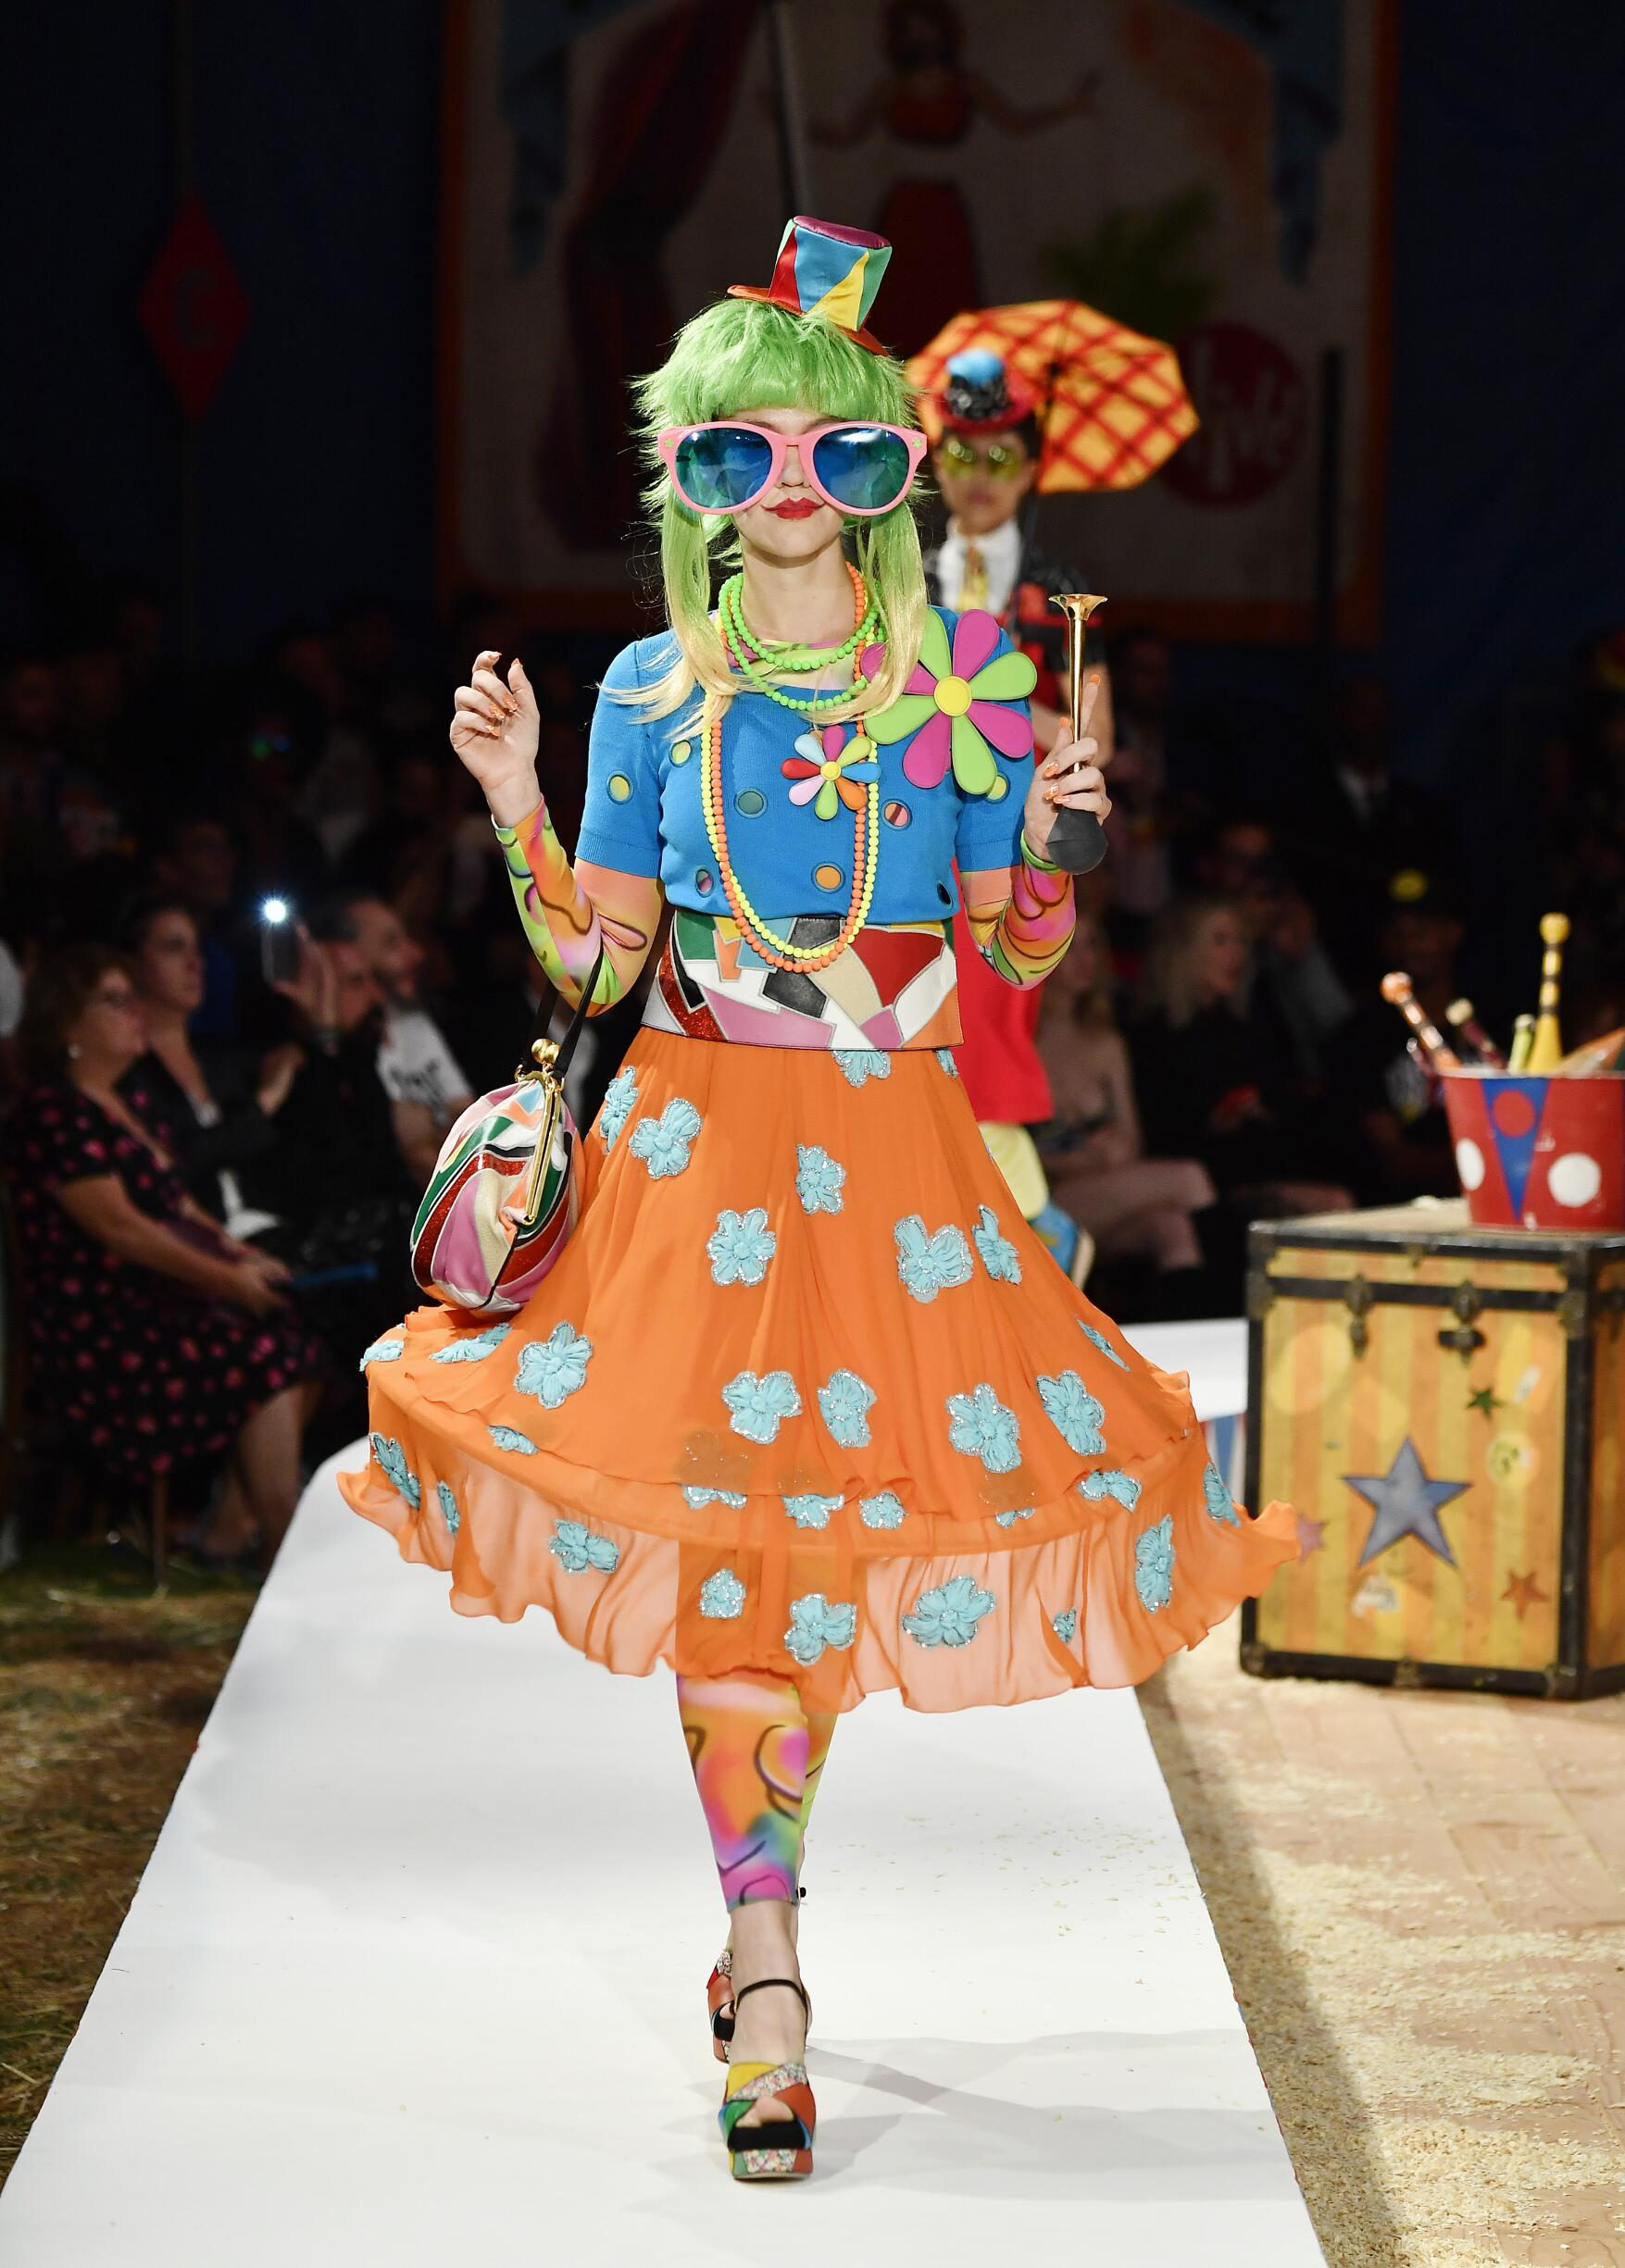 Moschino Spring Summer 2019 Menswear and Women's Resort Collection Look 43 Los Angeles